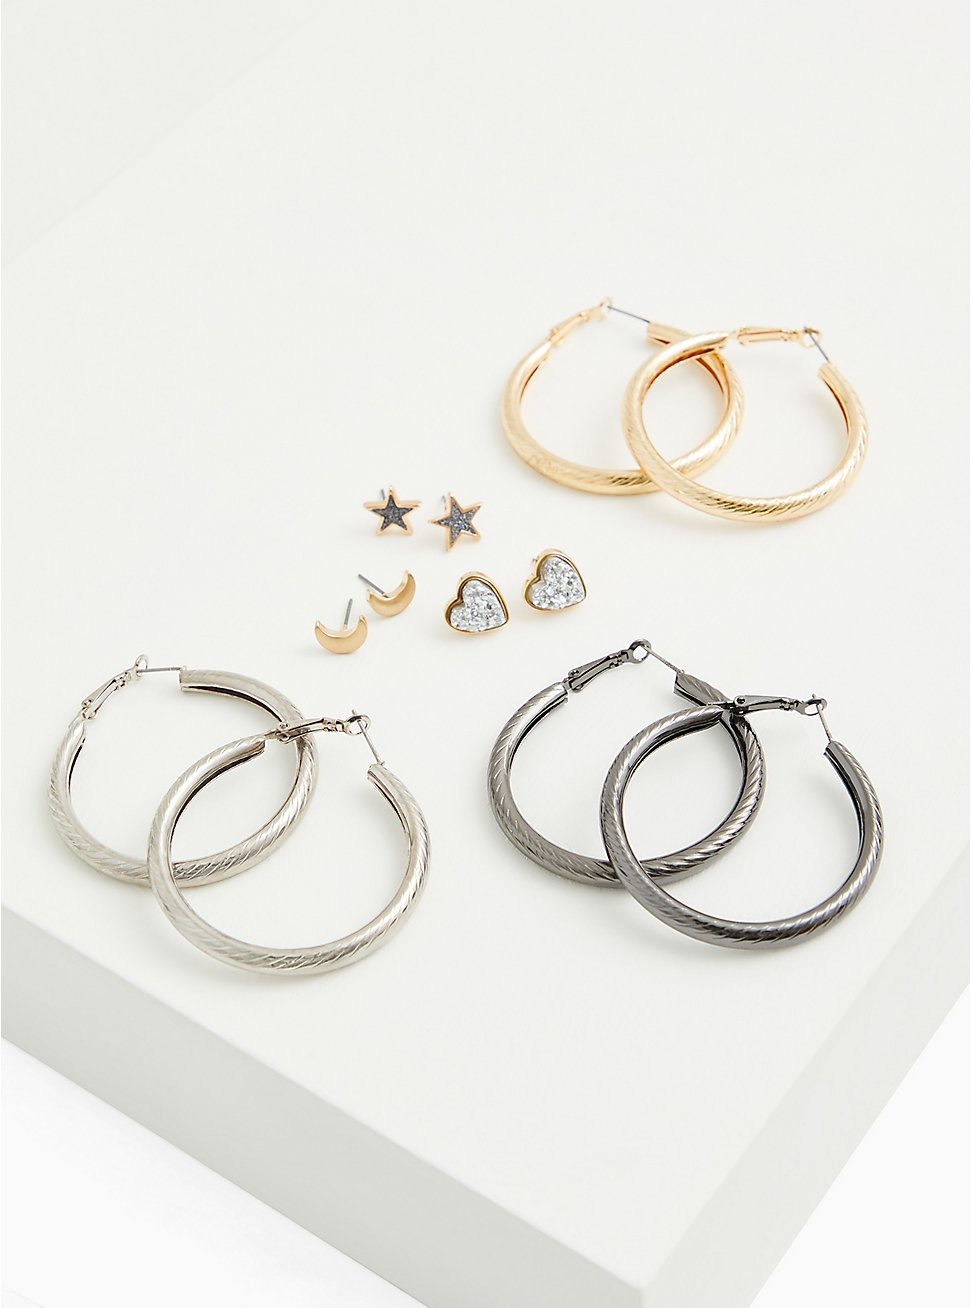 Plus Size Silver and Gold-Tone Celestial Stud & Hoop Earrings Set - Set Of 6, , hi-res